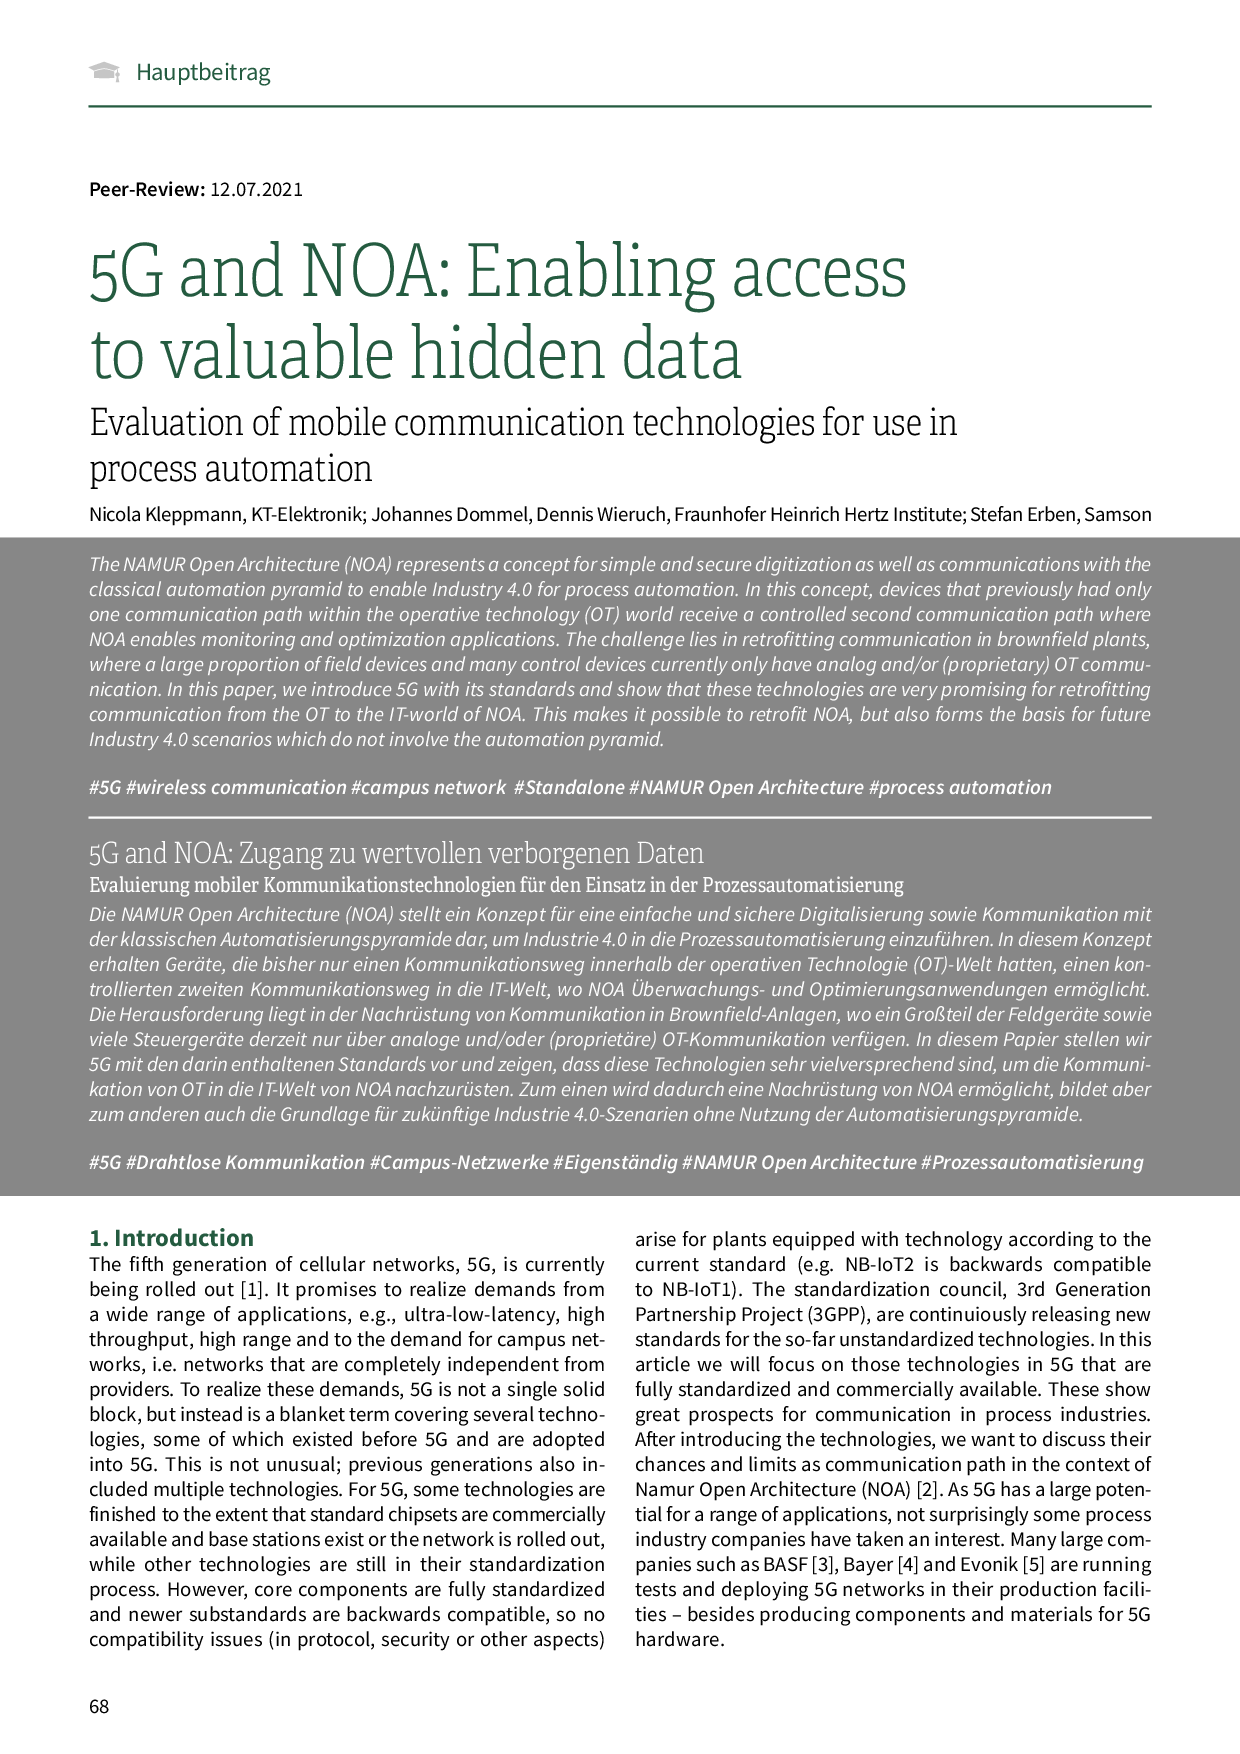 5G and NOA: Enabling access to valuable hidden data